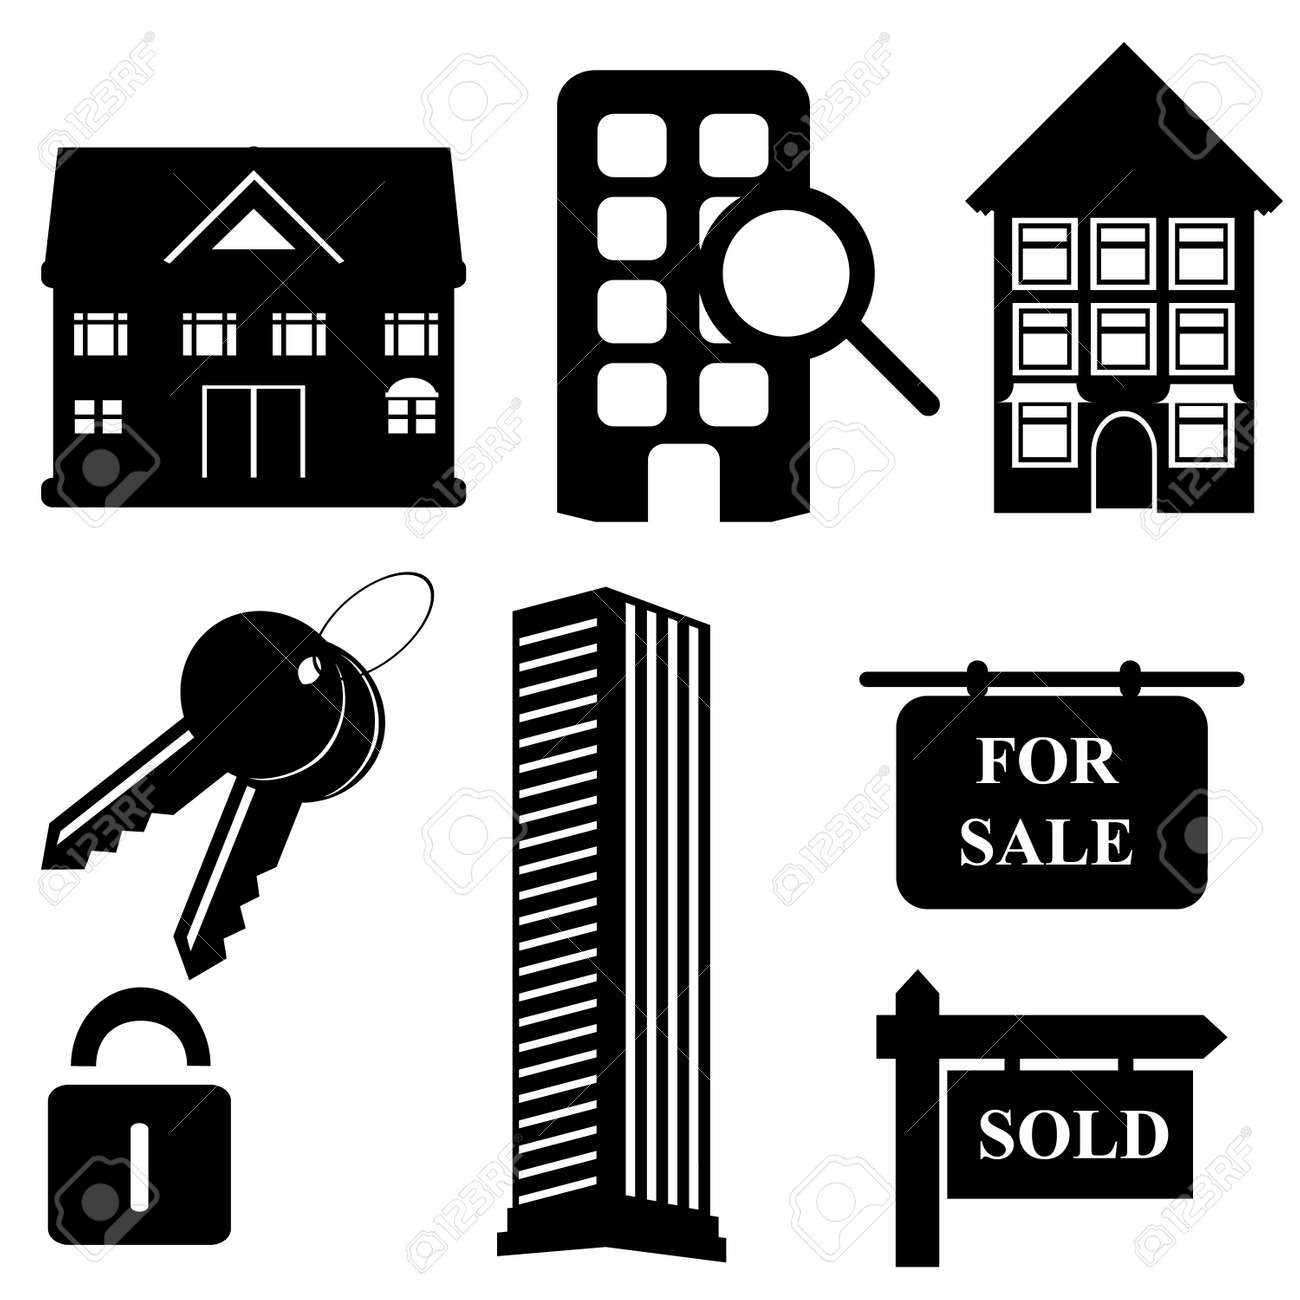 Real estate and housing symbols and icons - 8295036